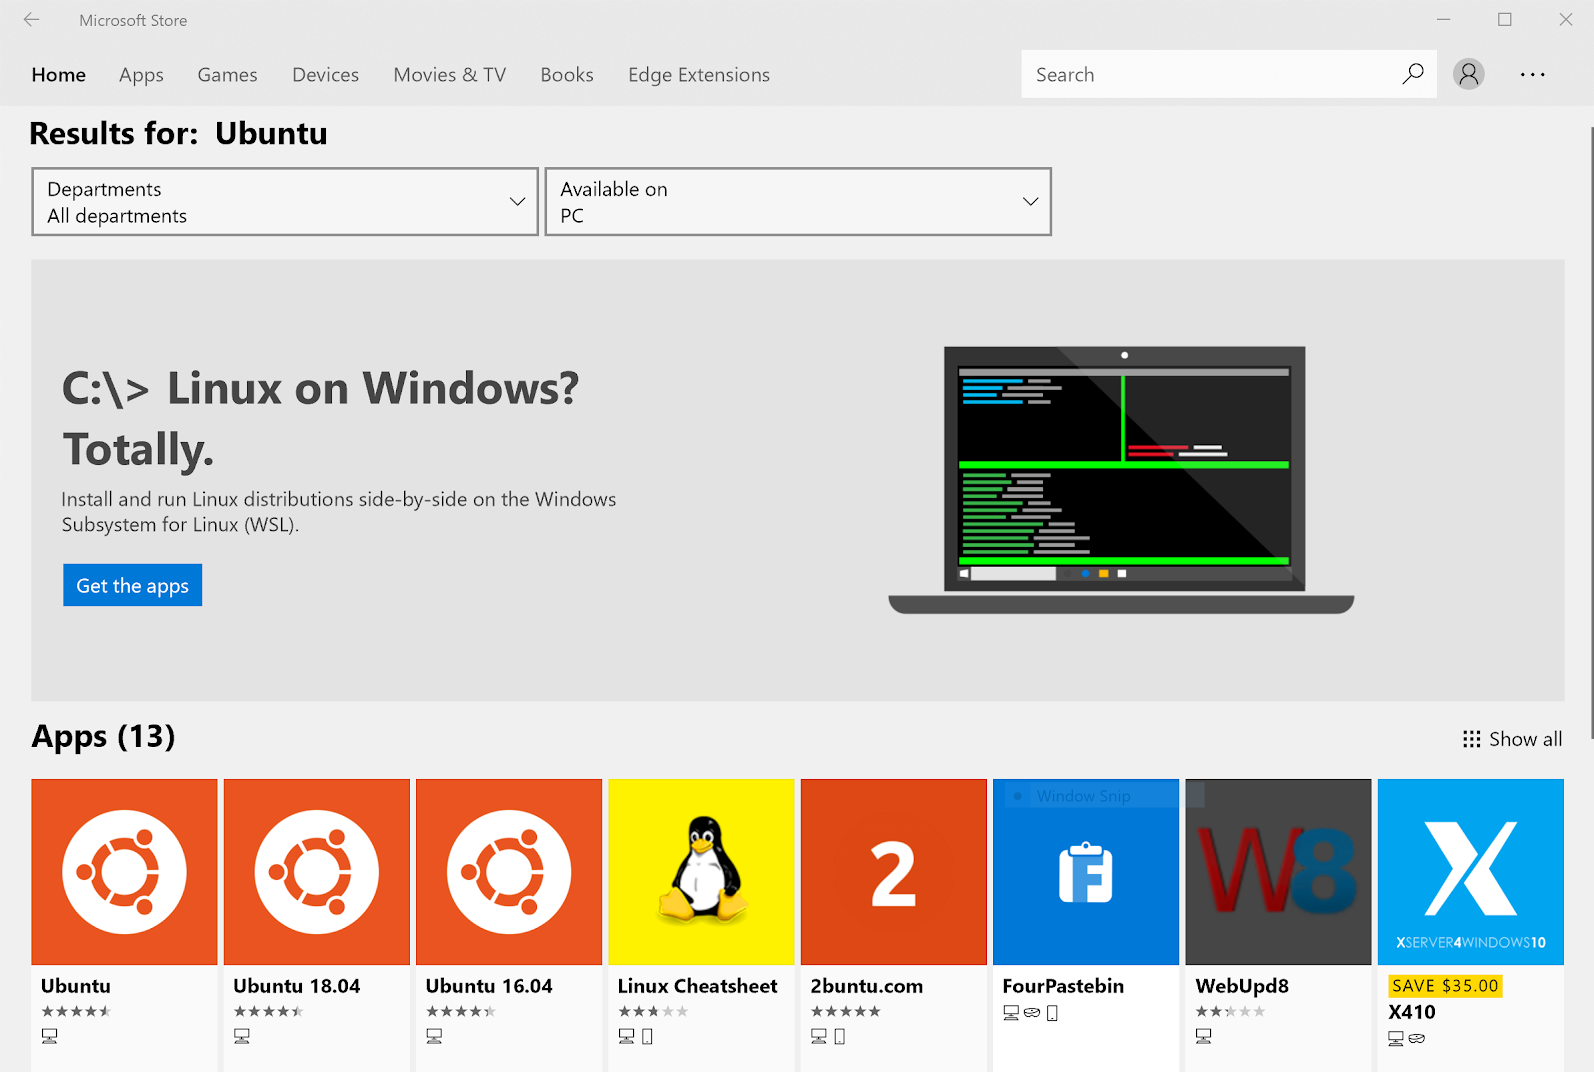 Getting set up with Windows 10 - Hands-On Data Science with the